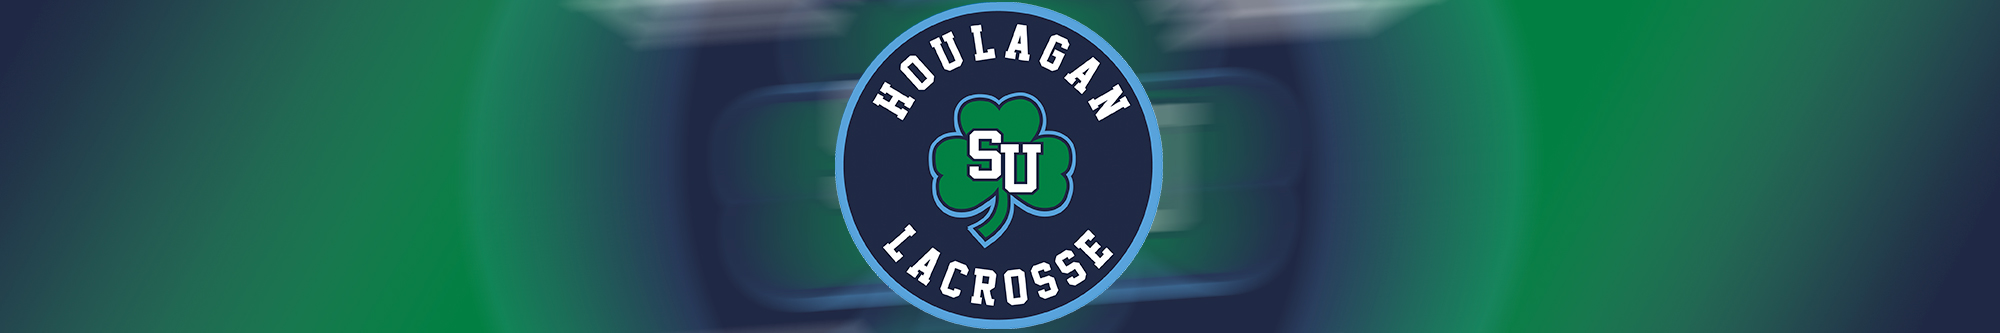 houlagan-box-lacrosse